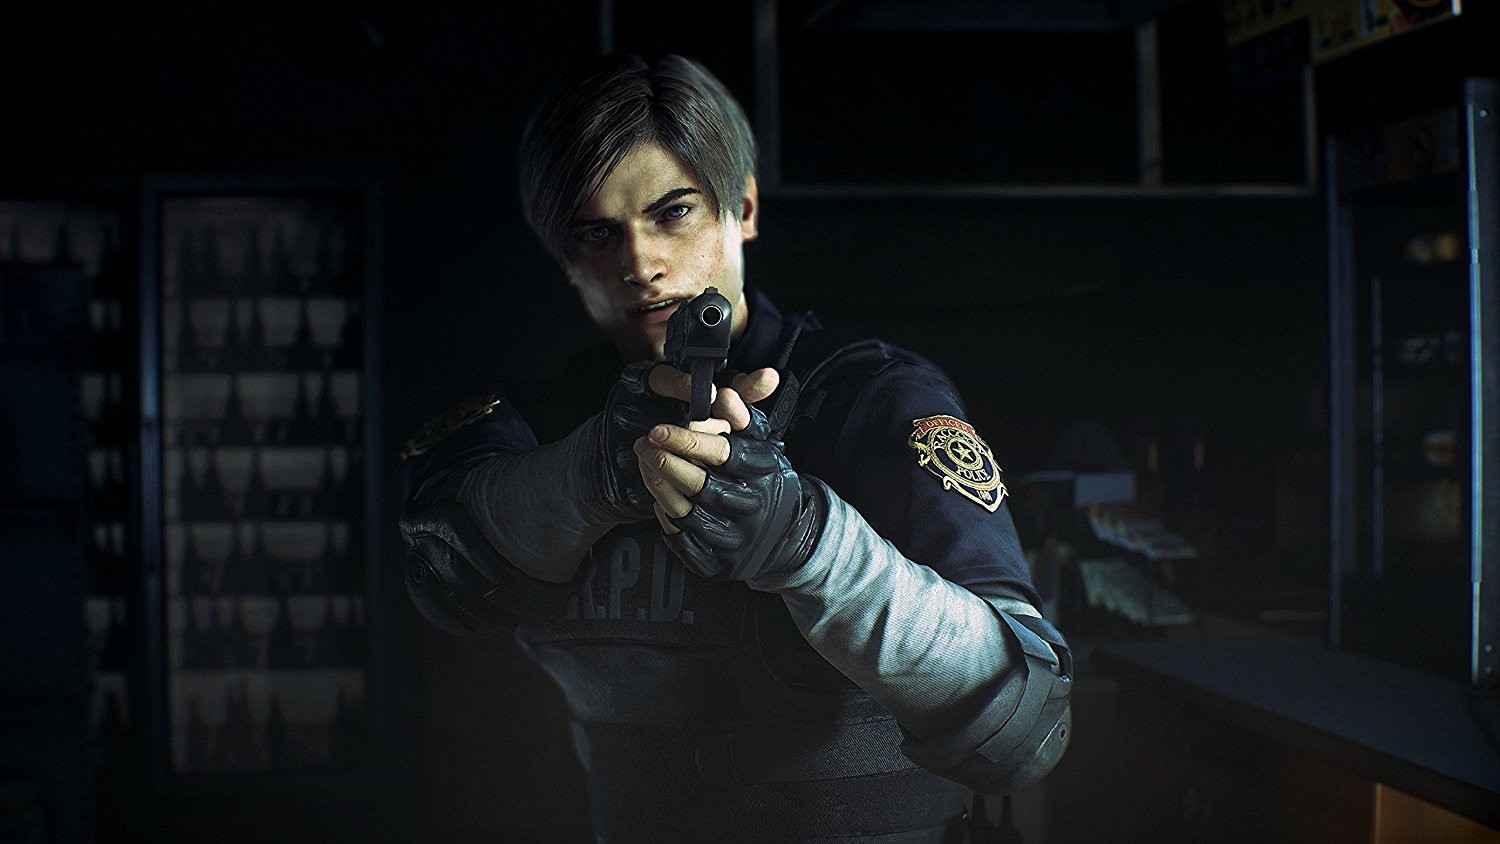 Resident Evil 2 Can Look Like A PS1 Game On Lowest Graphical